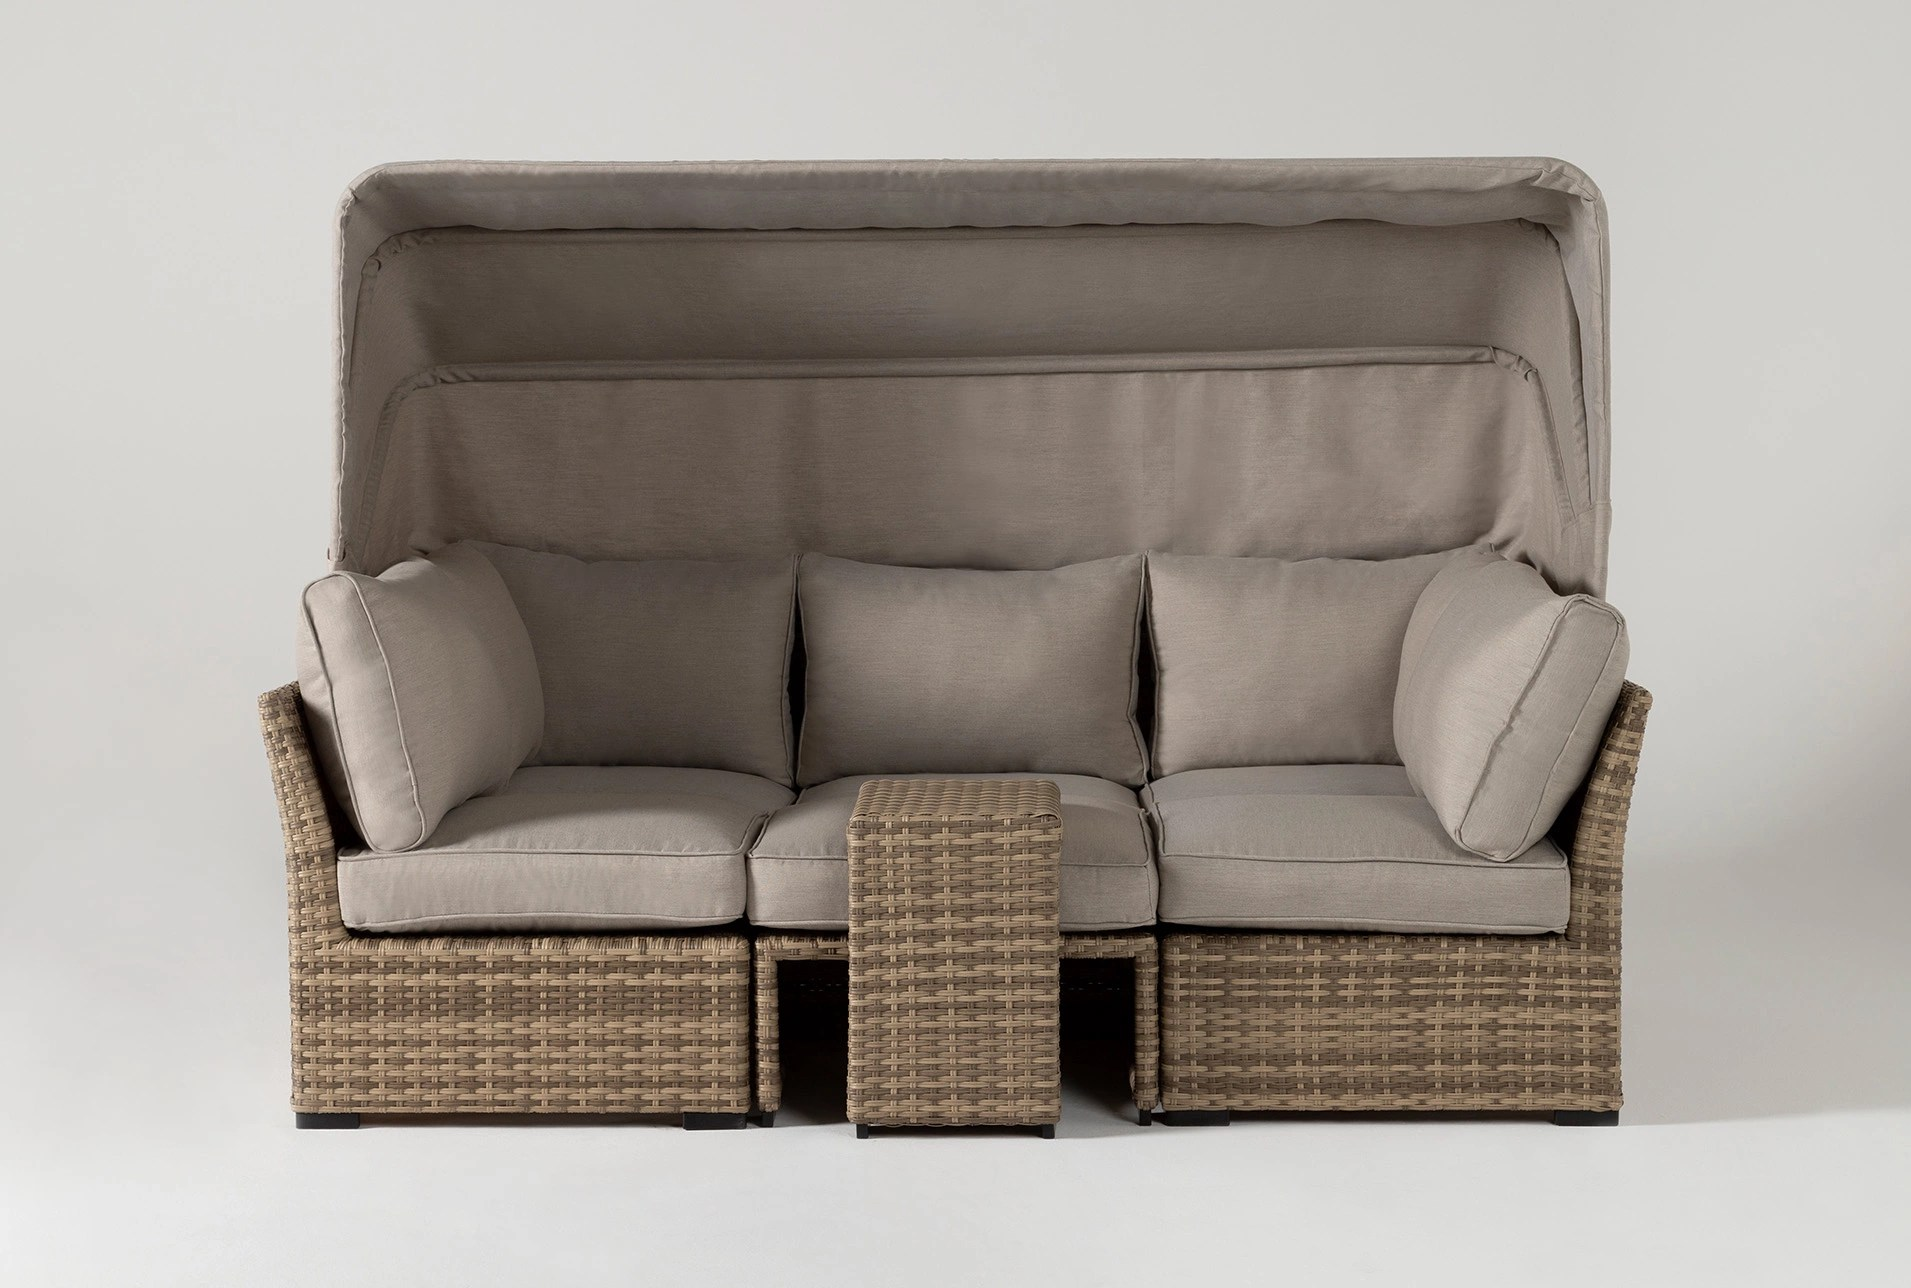 Capri Outdoor Daybed | Living Spaces on Living Spaces Outdoor Daybed id=49889